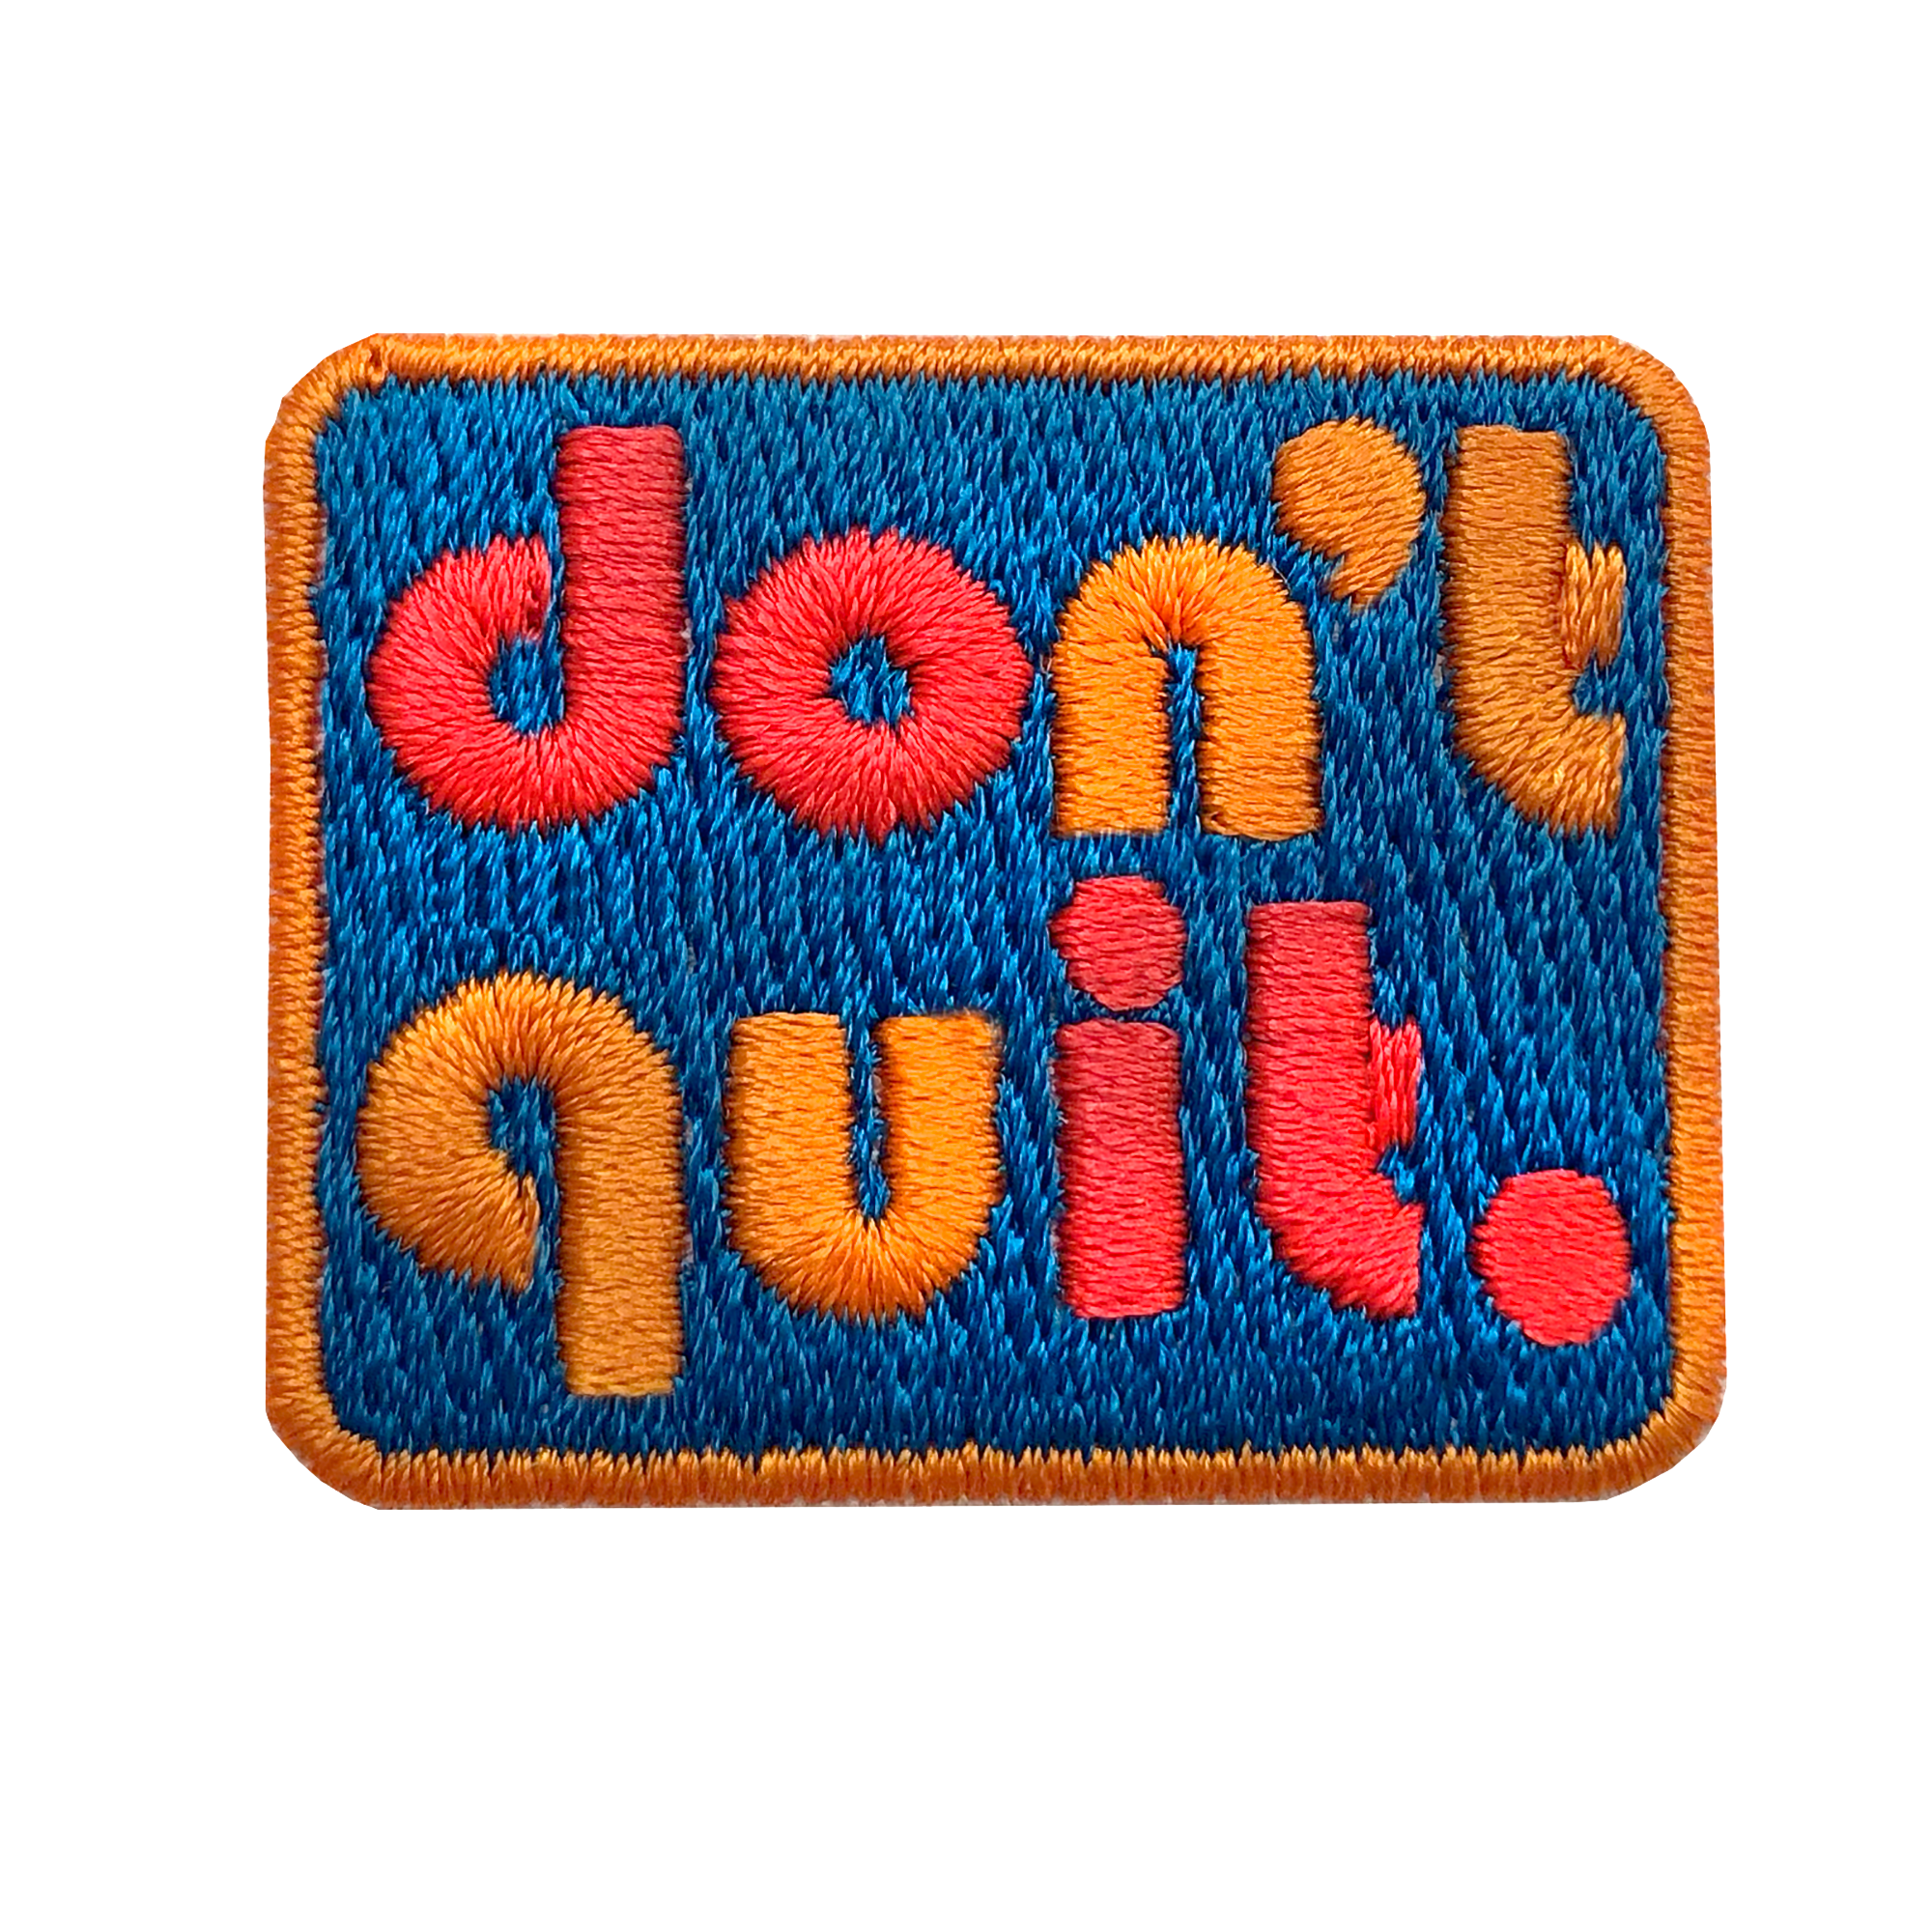 Patch - DOn't quIT